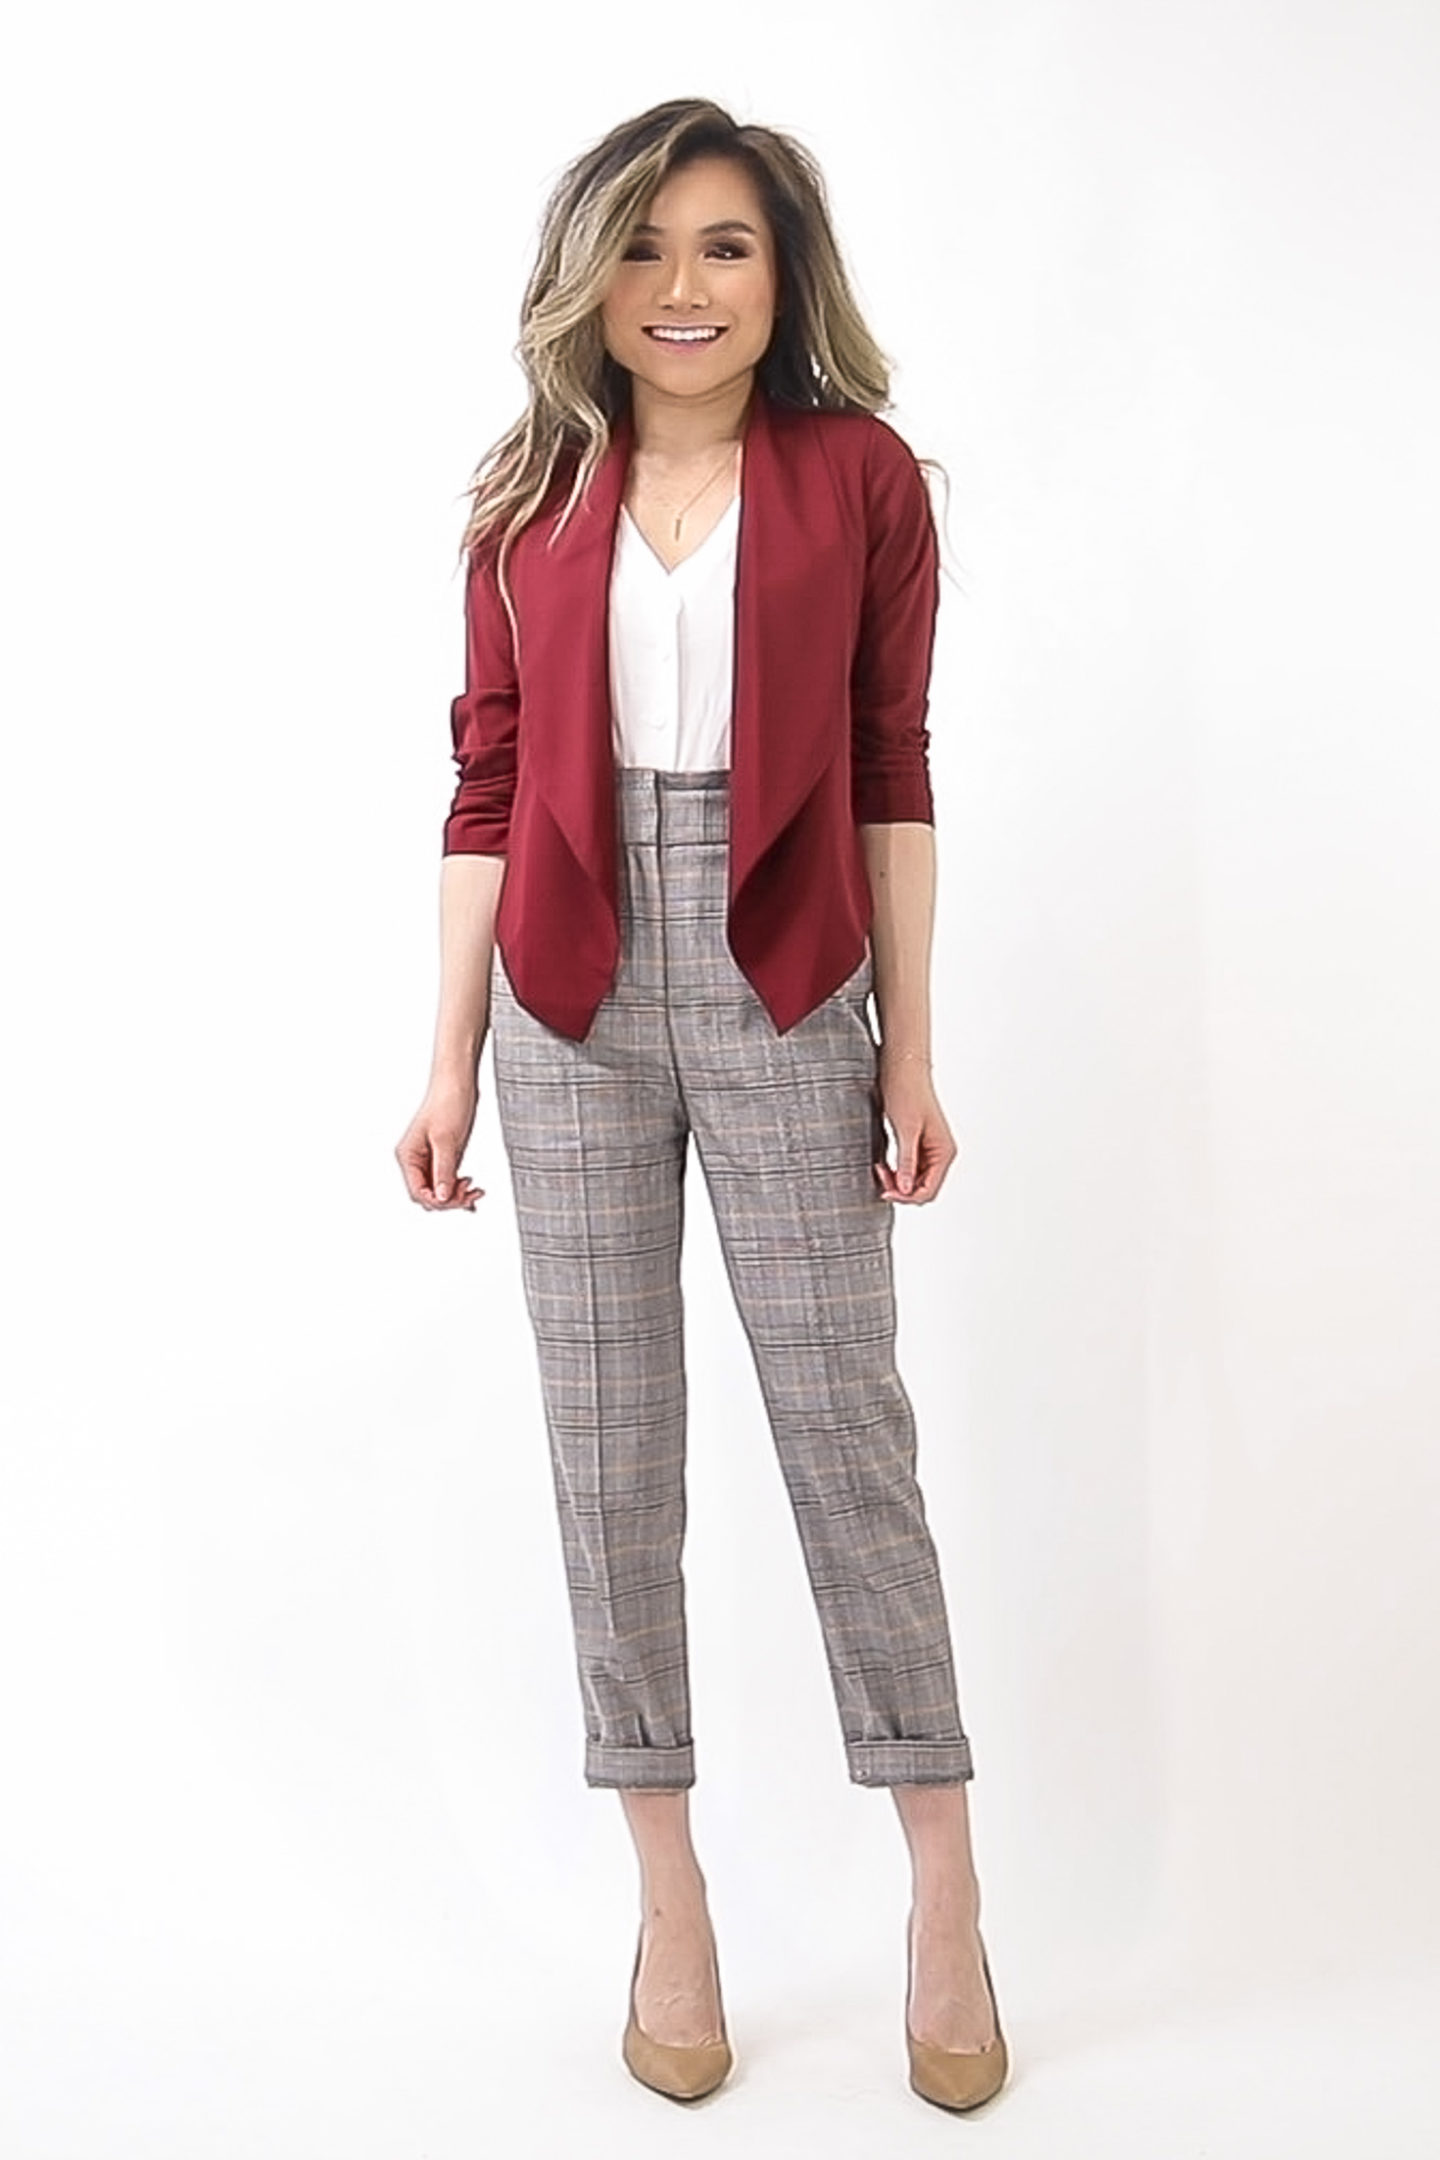 Work Outfits For Teachers And Creatives